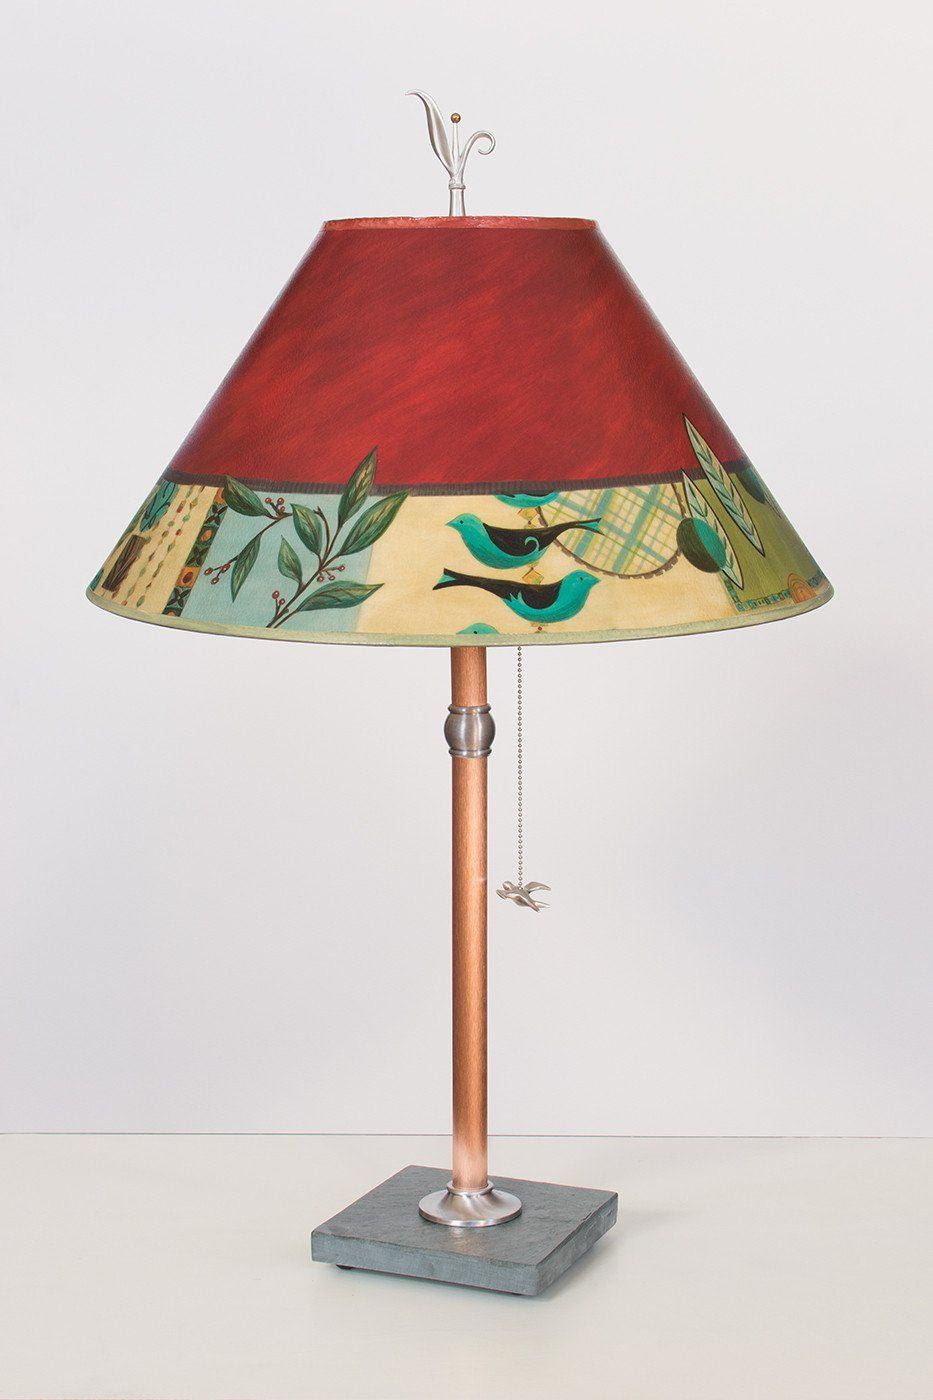 Copper Table Lamp on Vermont Slate with Large Conical Shade in New Capri